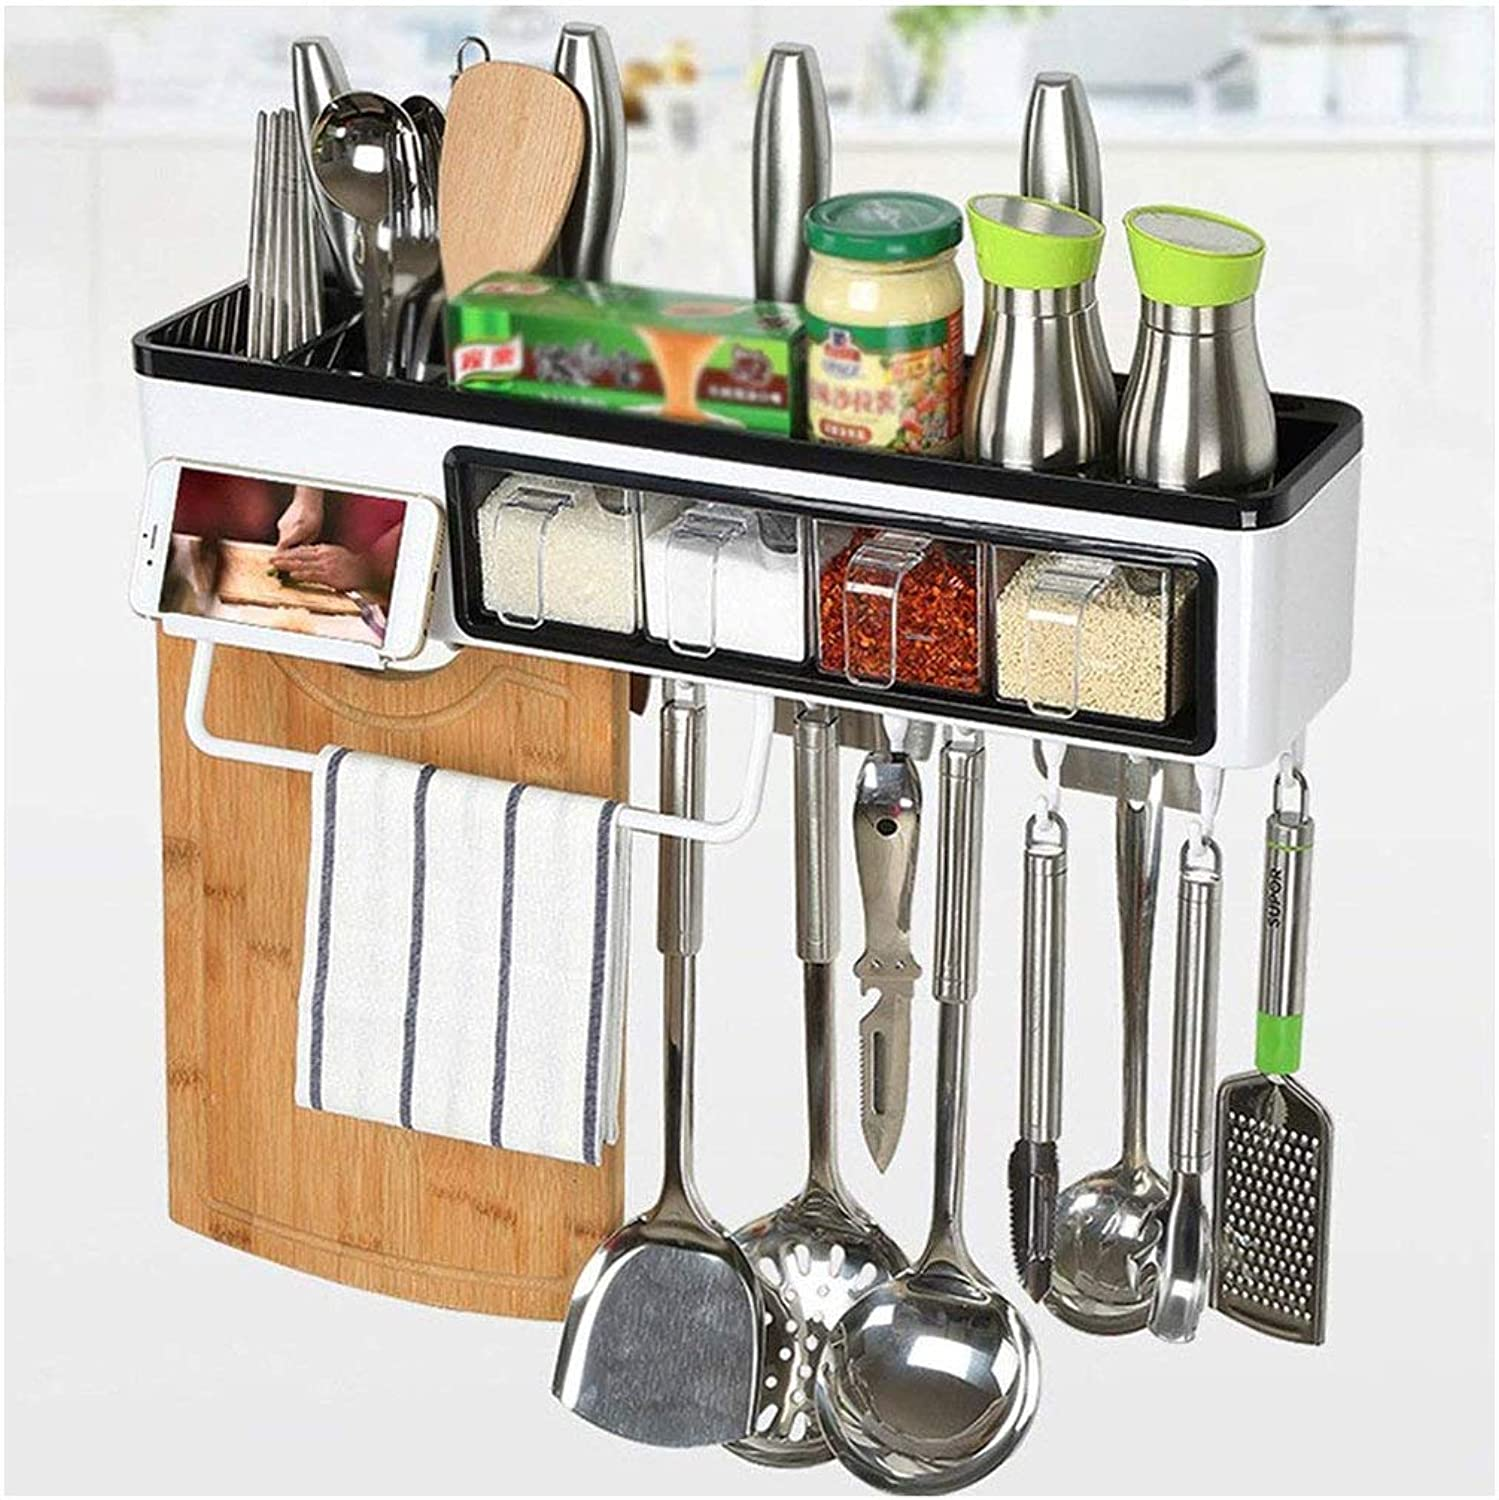 greenical Shelf Unit Shelf Multi-Function Wall Hanging Kitchen kitchenware Supplies Storage Box Flavoring Multifunction (Size   50  12  11cm)